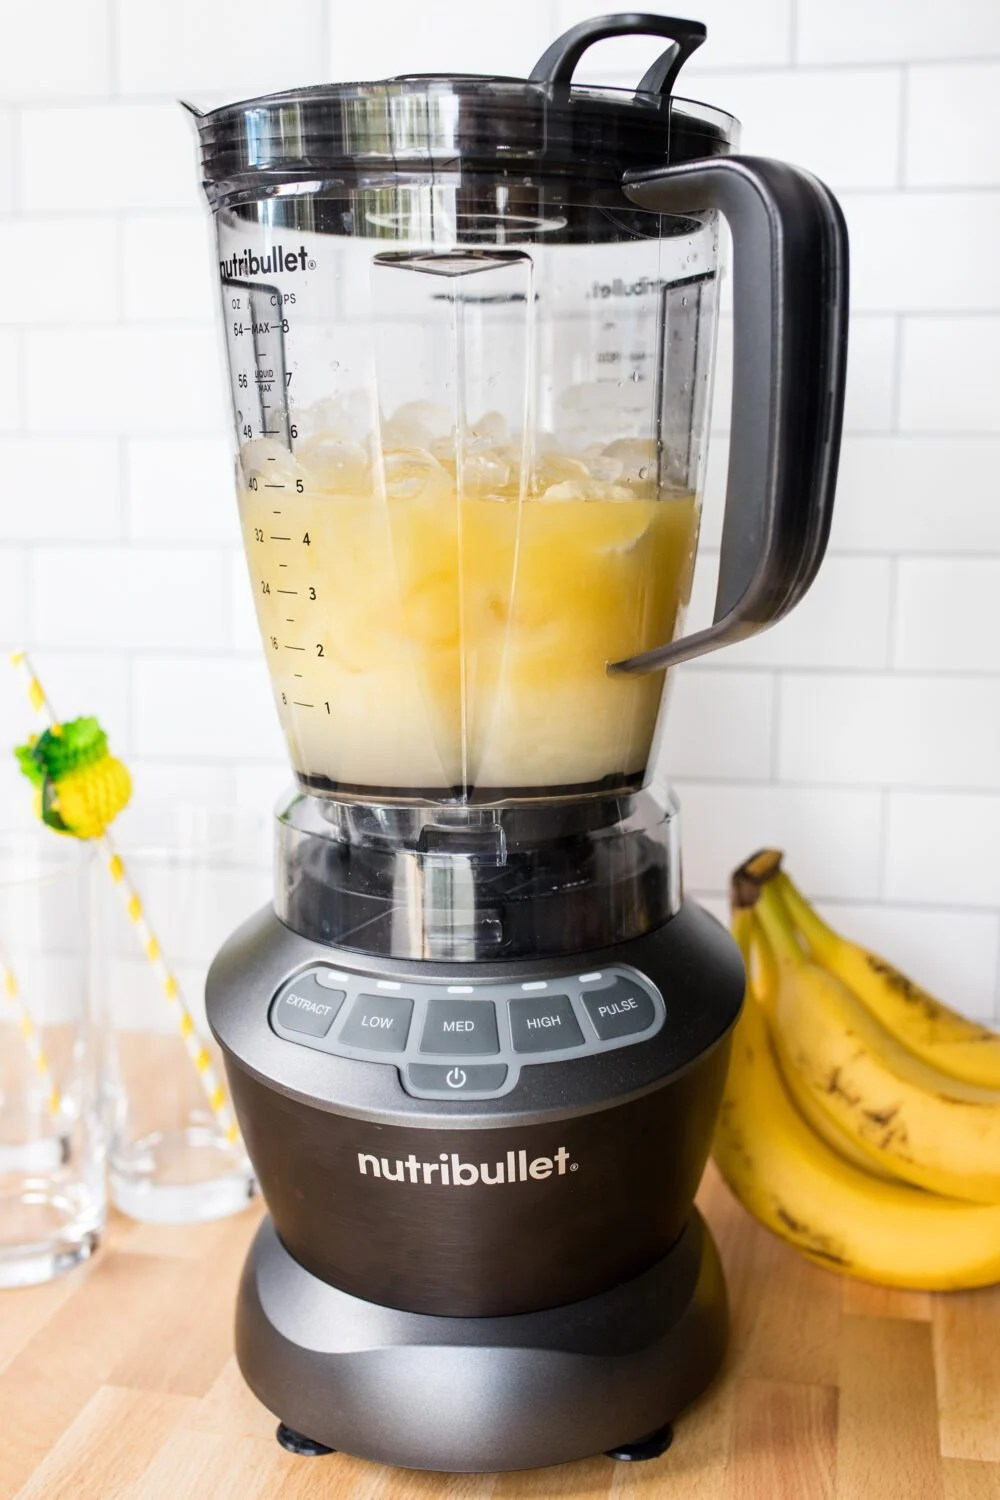 banana, pineapple juice, cream of coconut and ice in a nutribullet blender